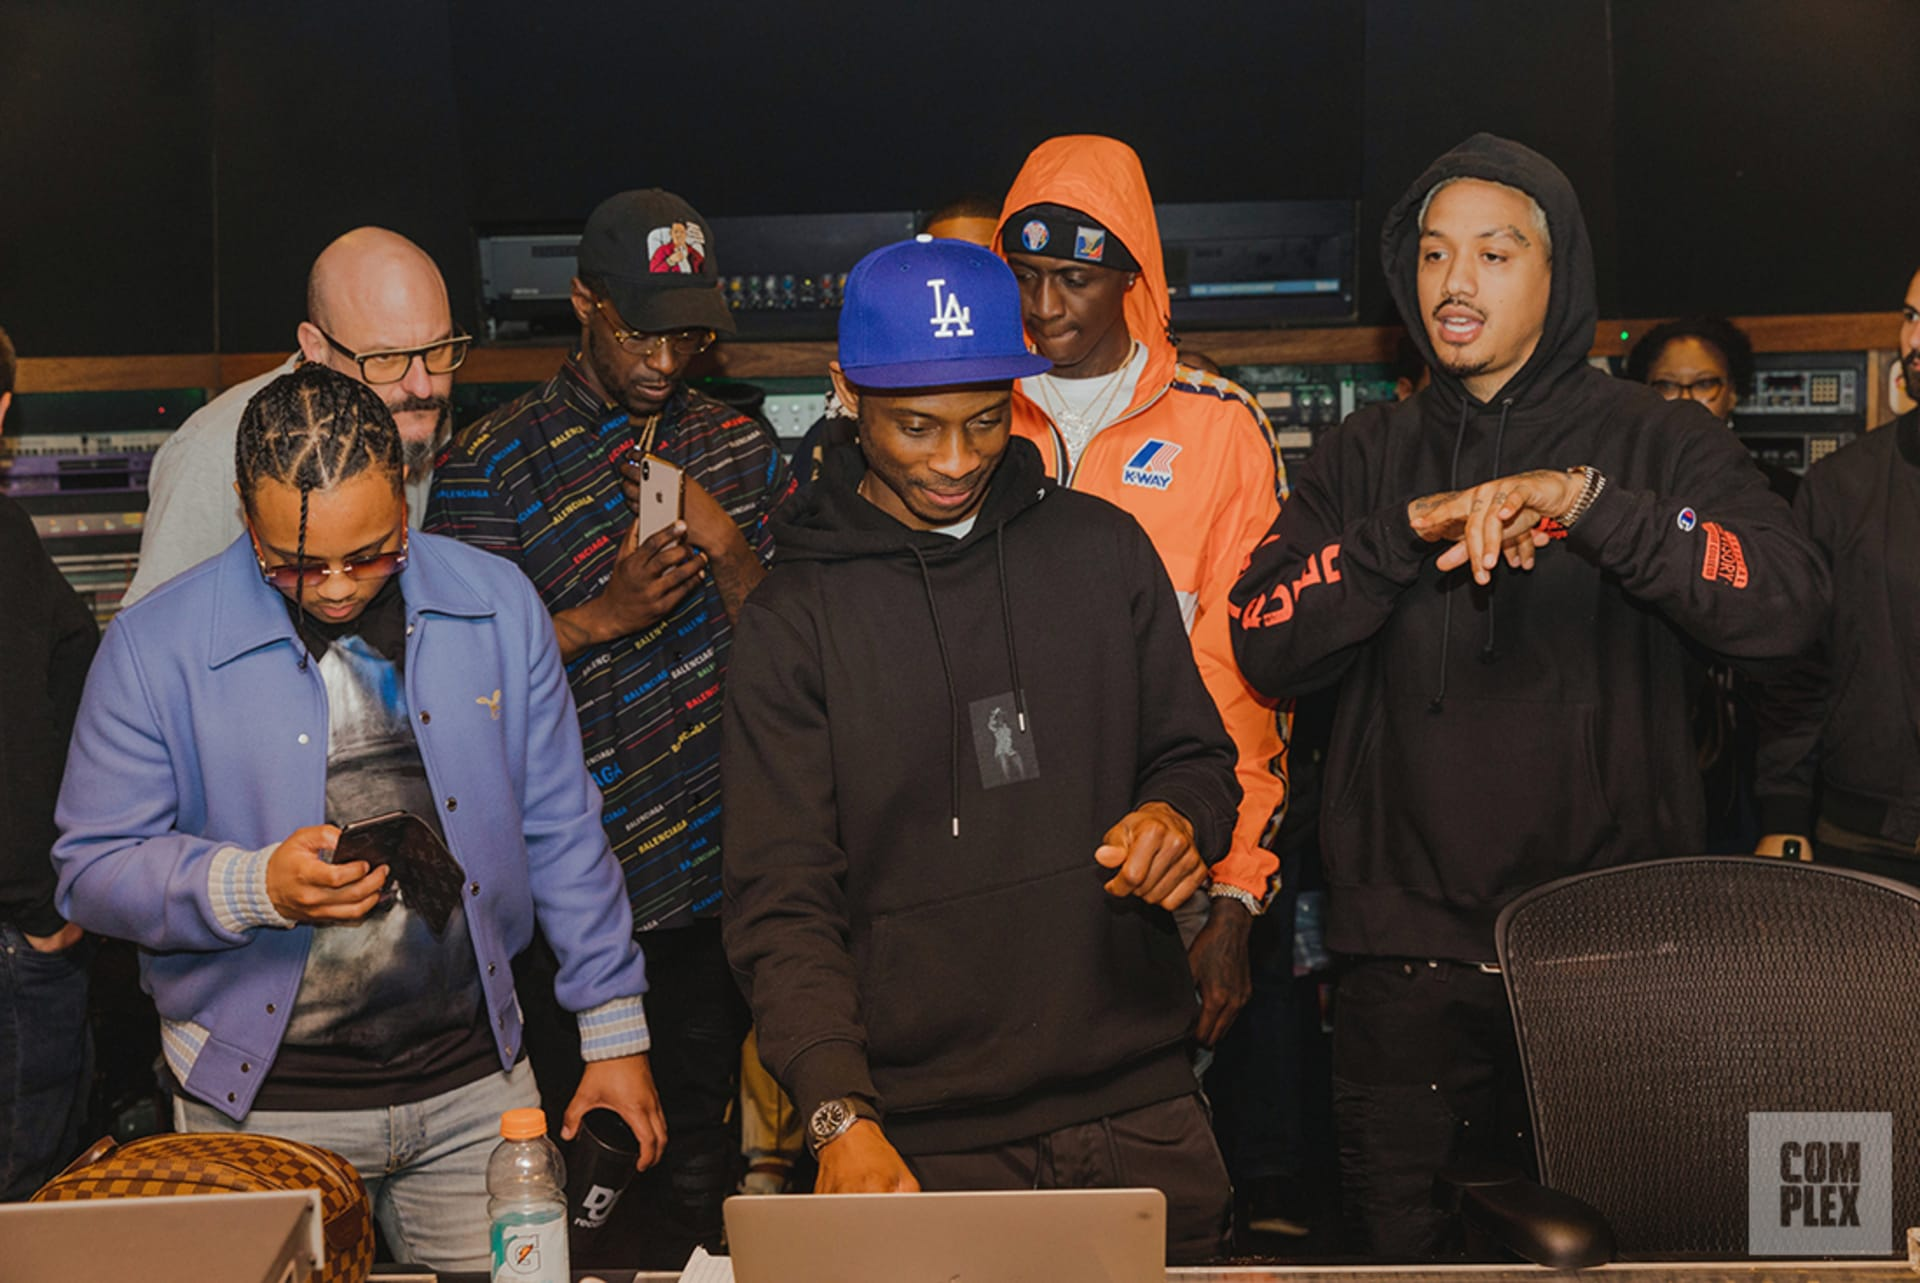 Def Jam's Rap Camp Experiment: 'Come Watch the F*cking